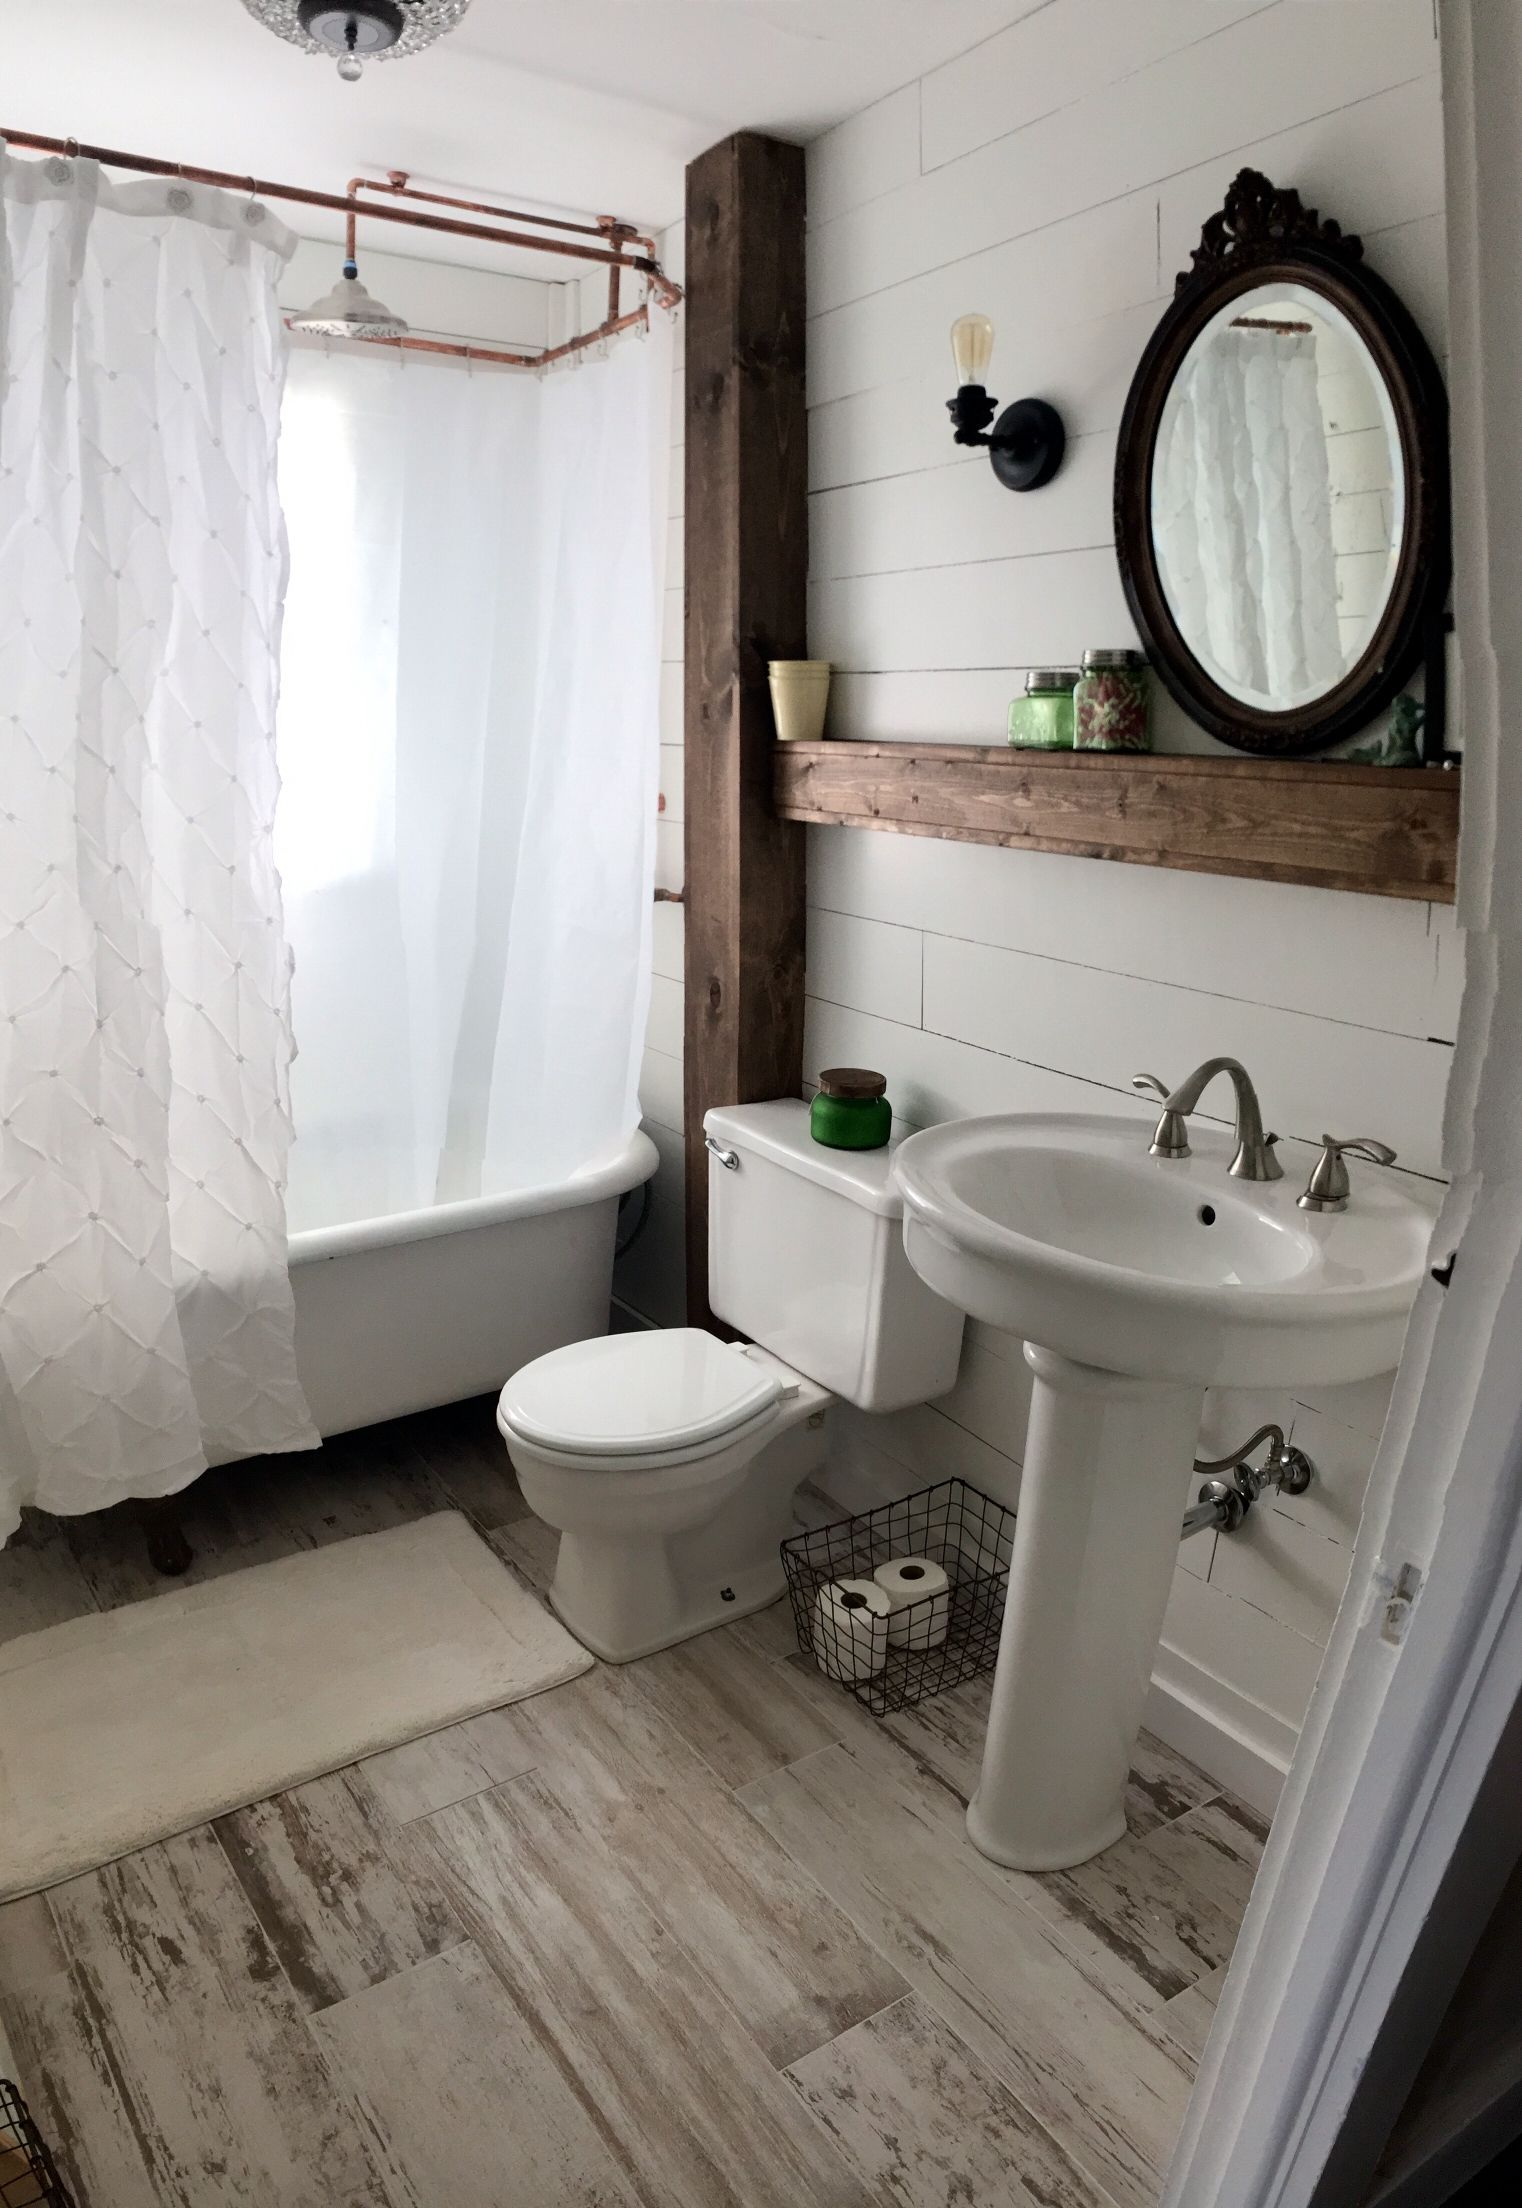 Basement Bathroom Ideas Budget Ceiling And Small Space. Check Cabin